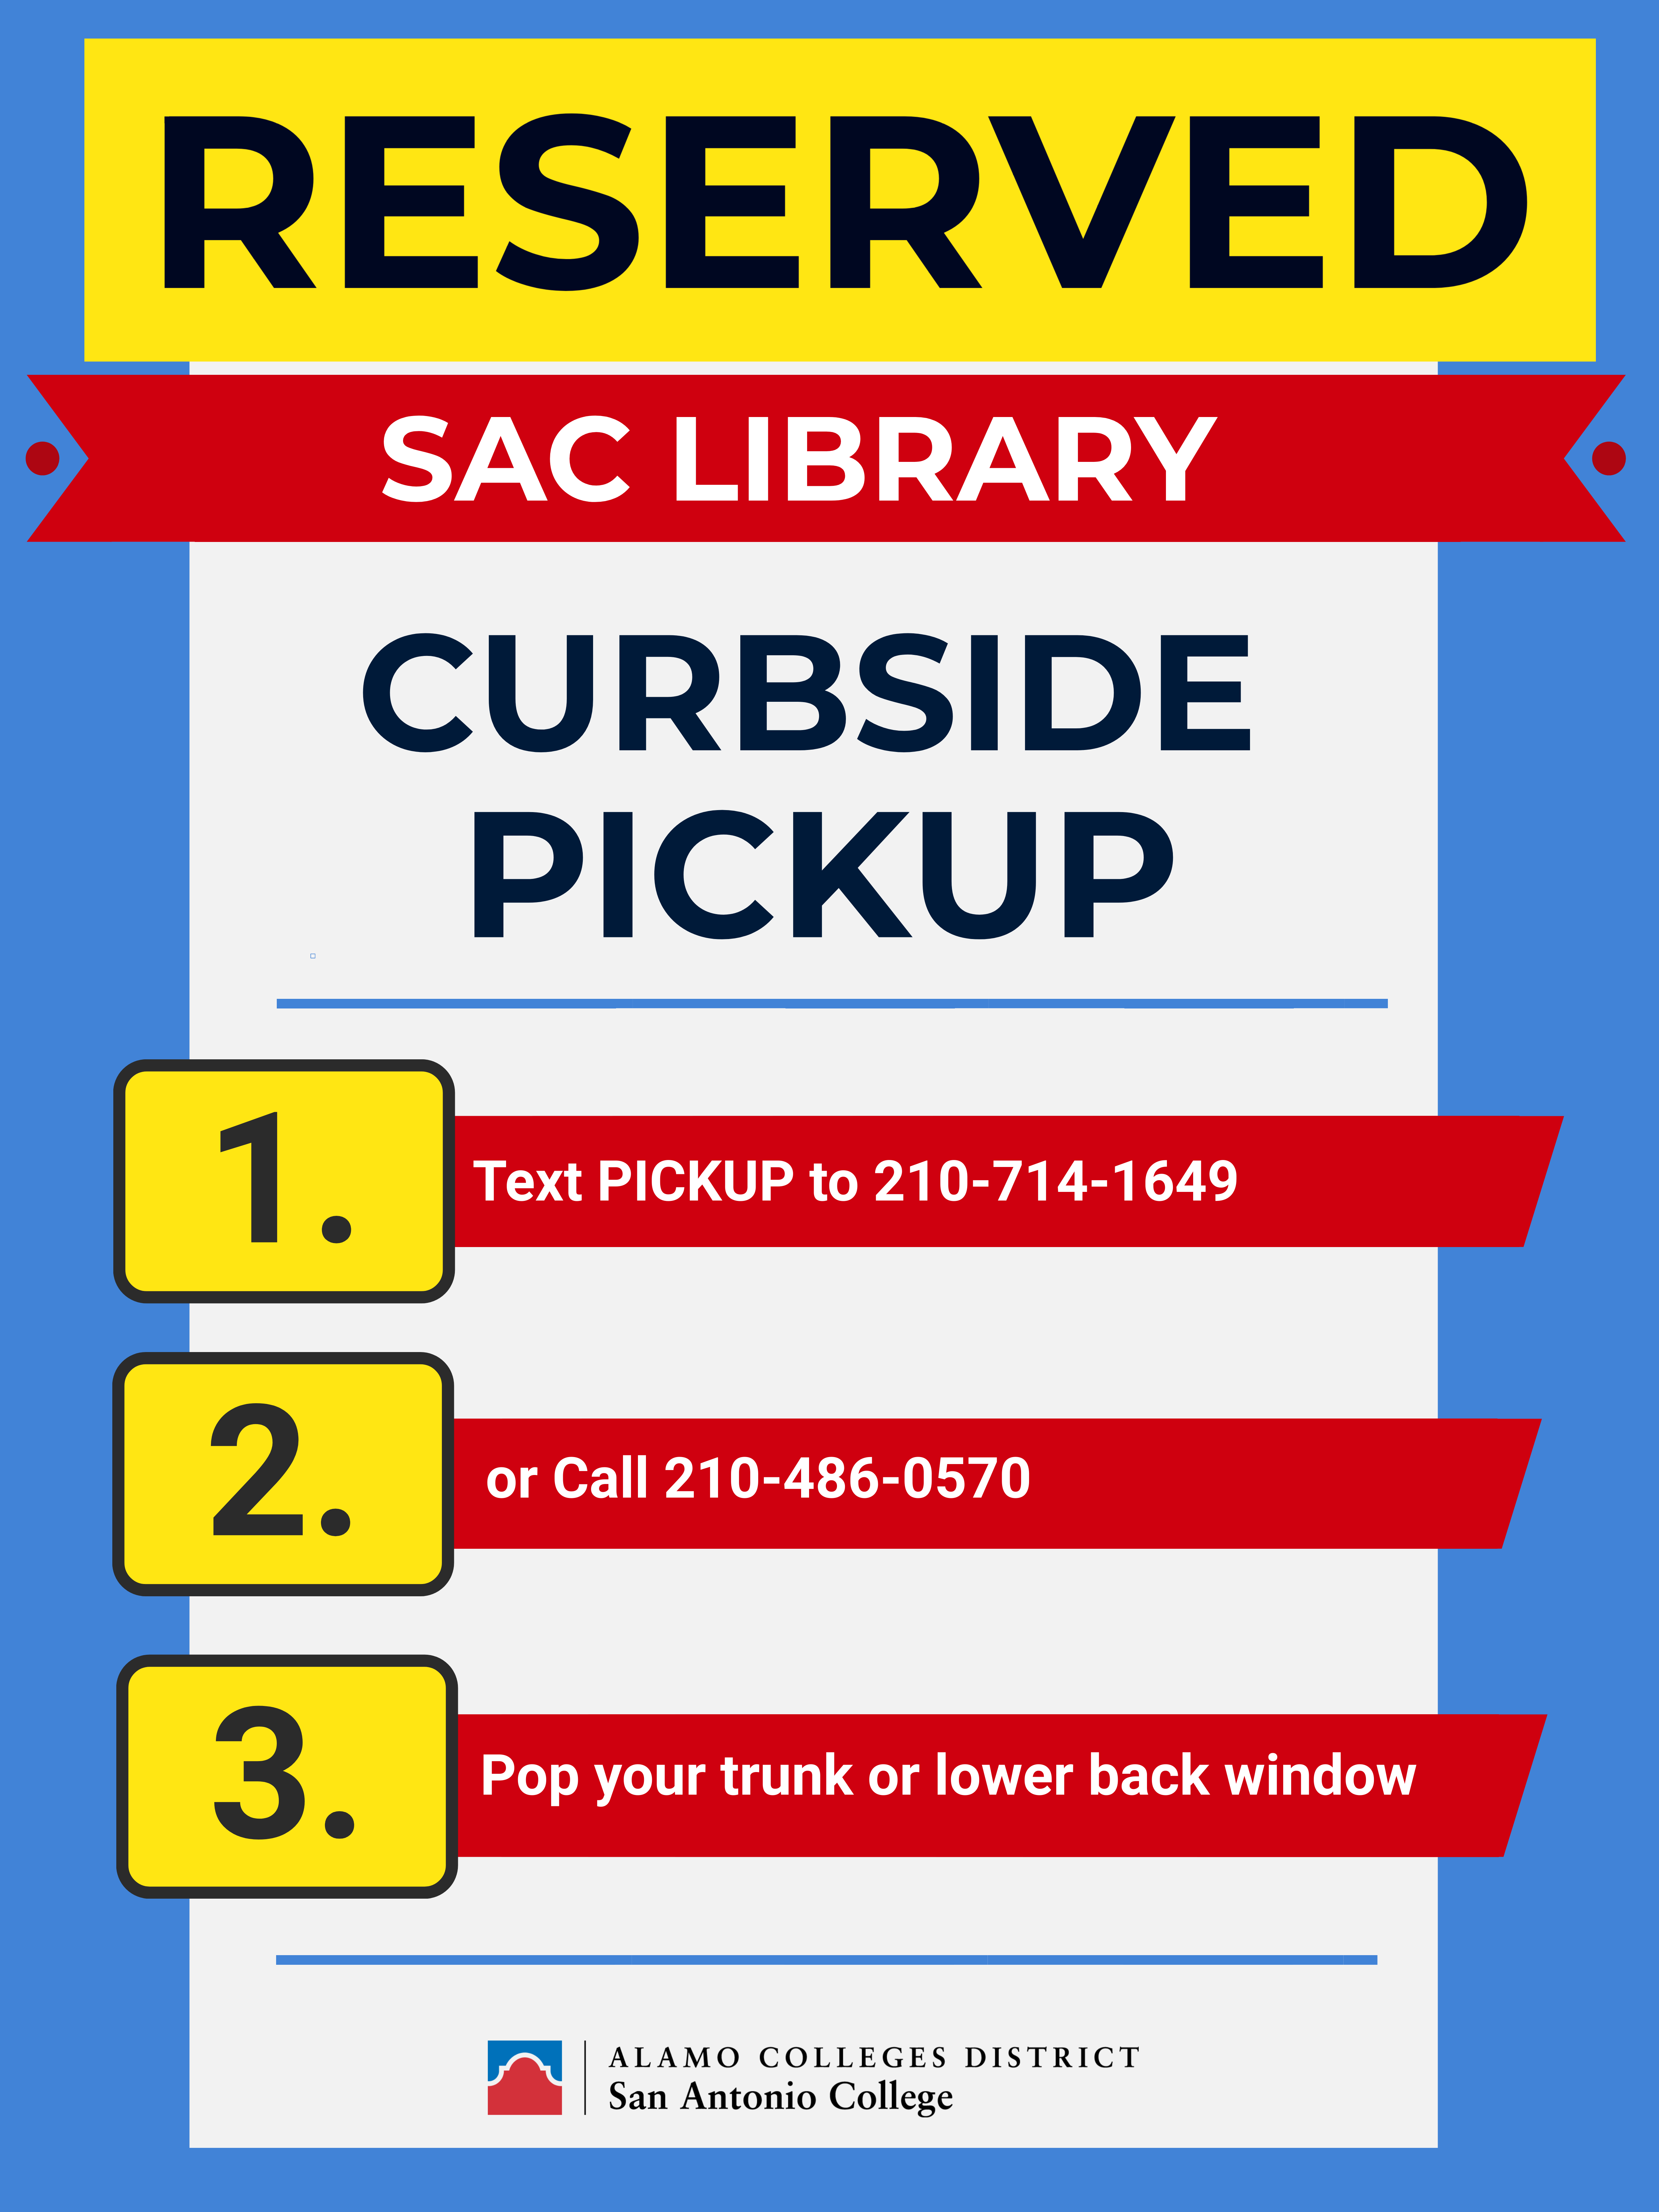 Curbside pickup poster